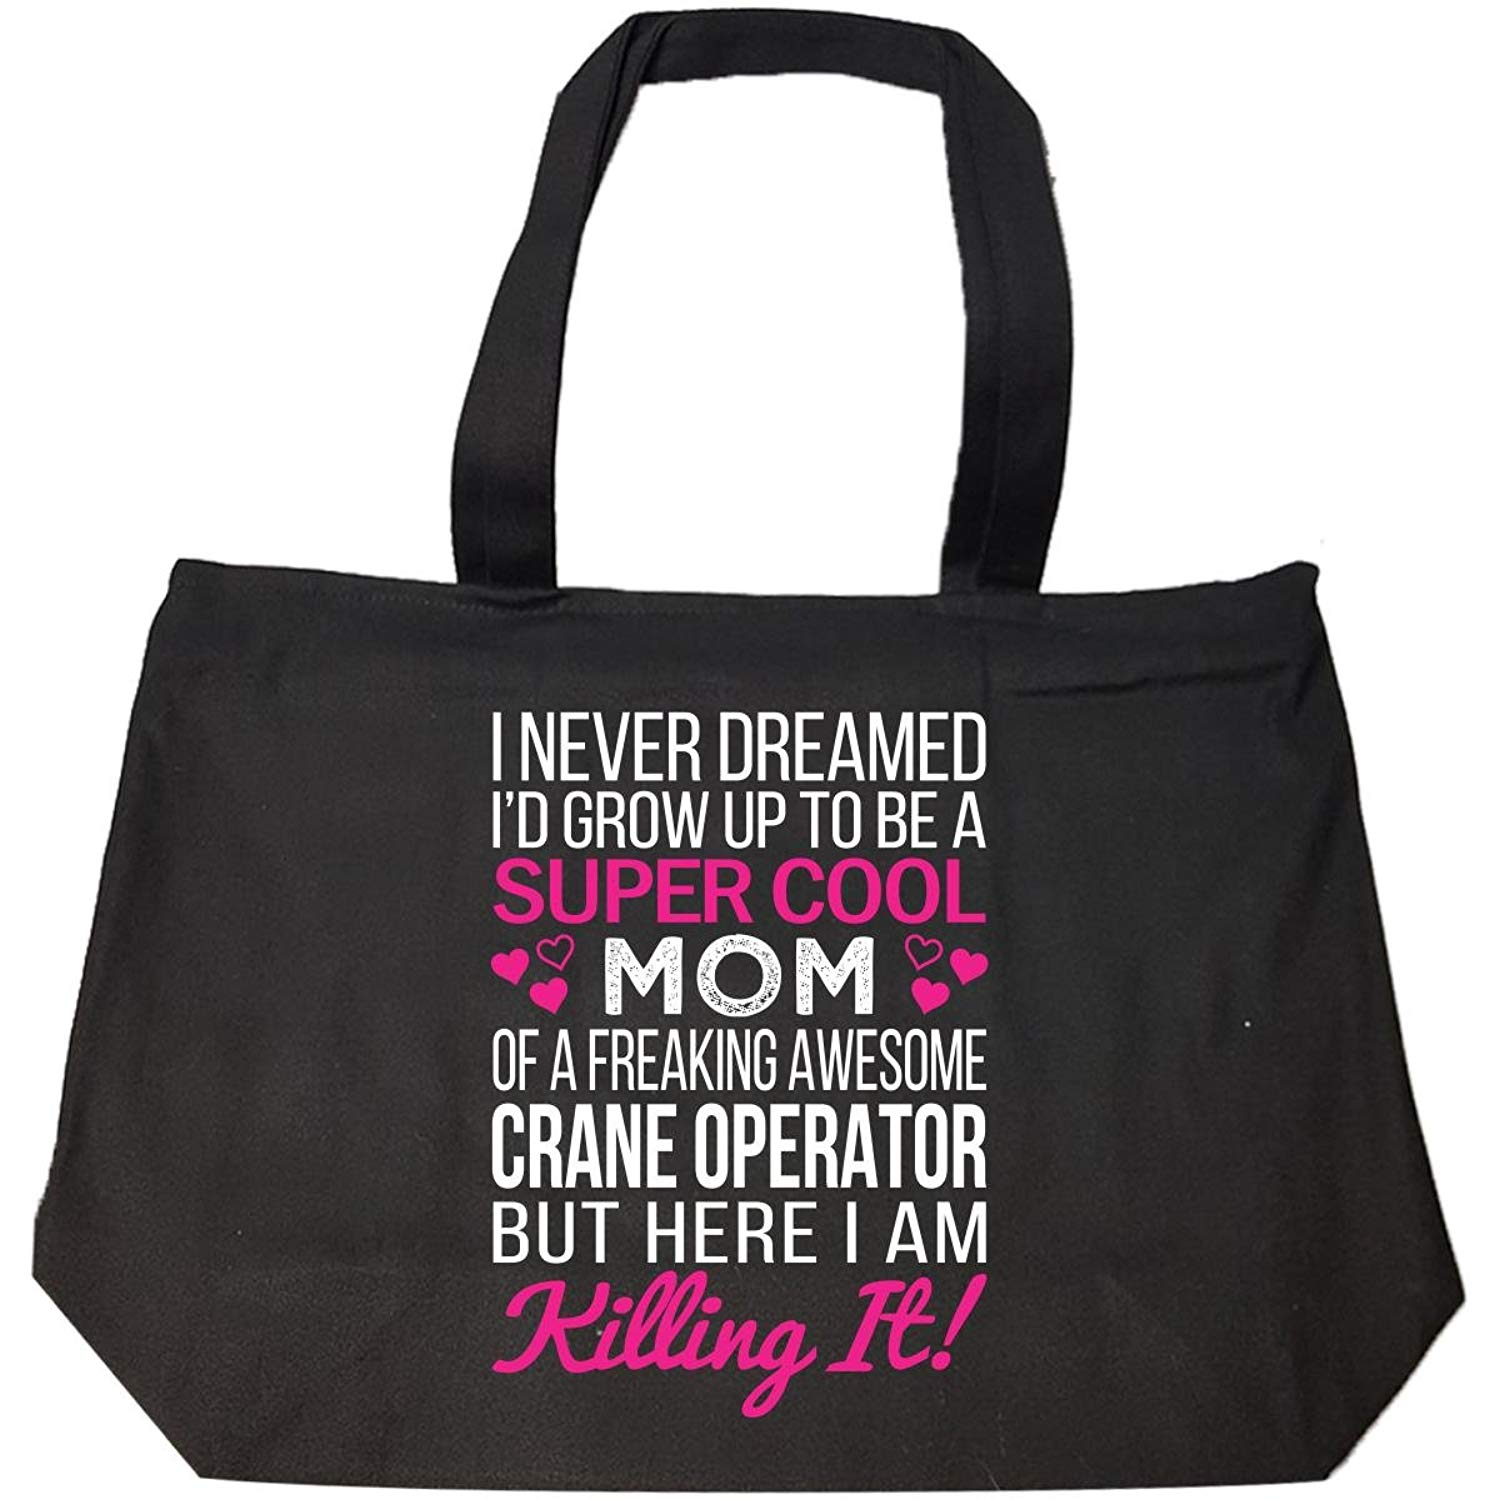 e12a1a53 Get Quotations · Super Cool Mom Of Freaking Awesome Crane Operator Mom Gift  - Tote Bag With Zip